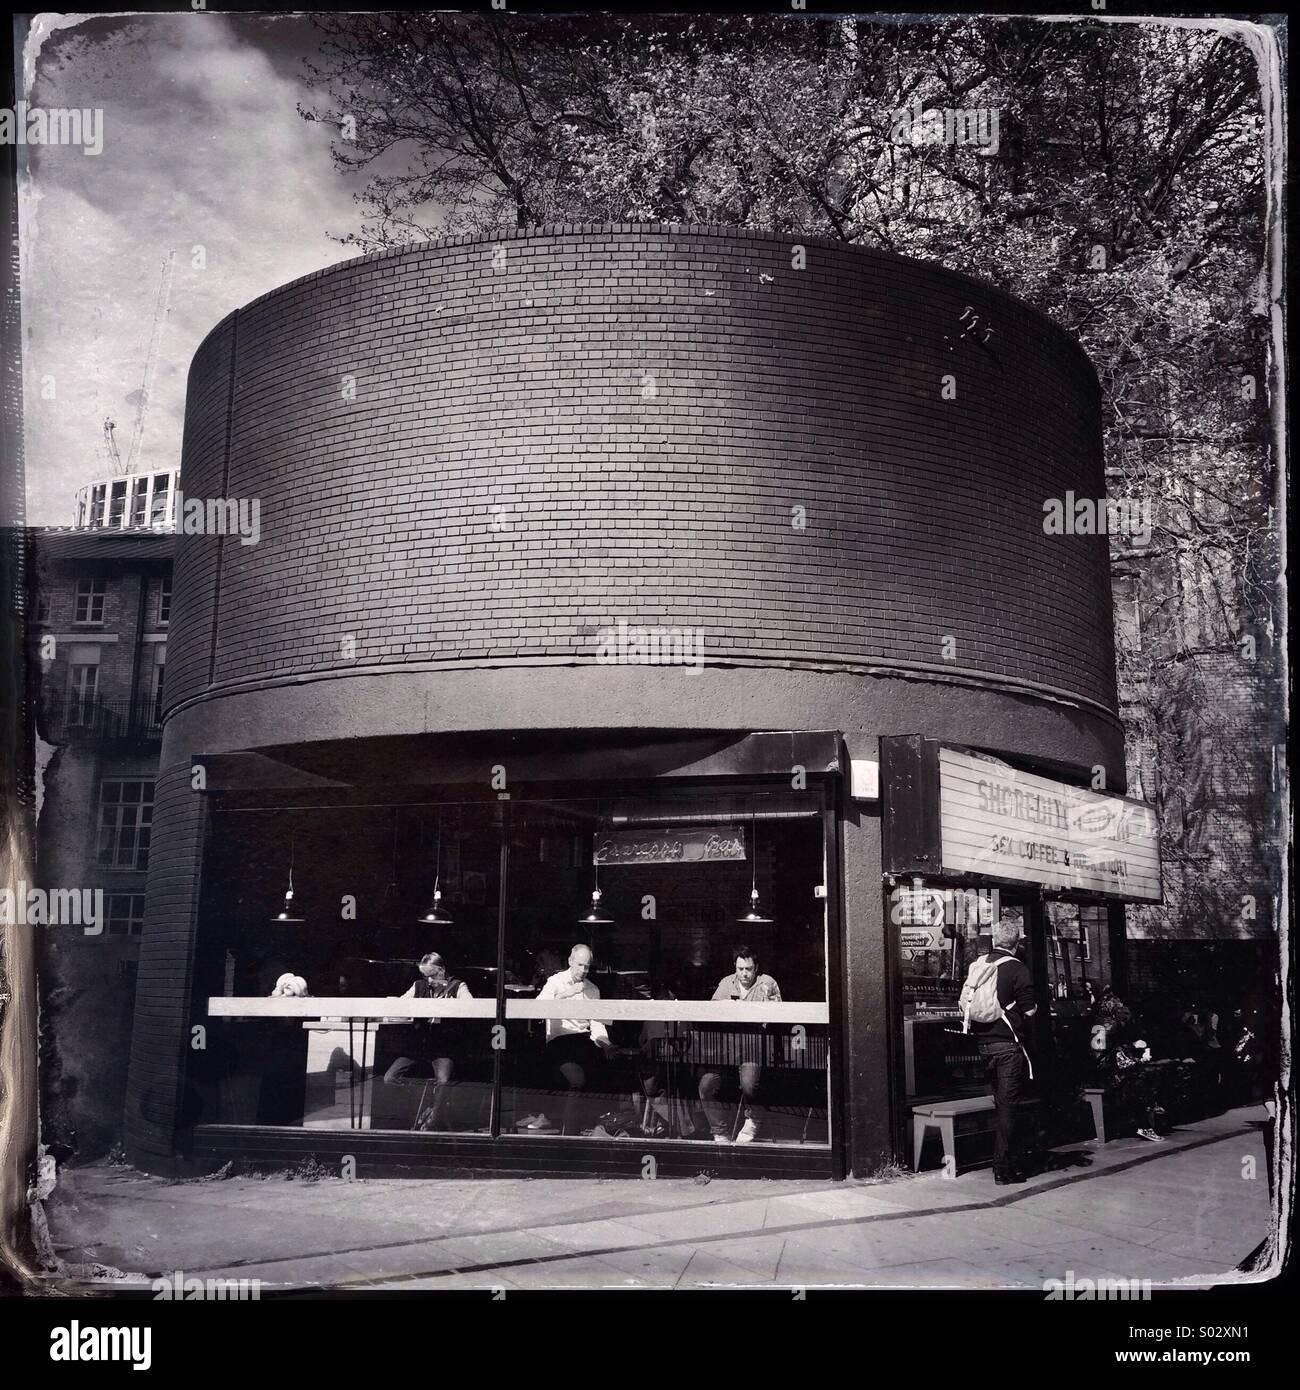 Black and white photo of Shoreditch Grind coffee shop on Old Street Roundabout, London, UK. - Stock Image